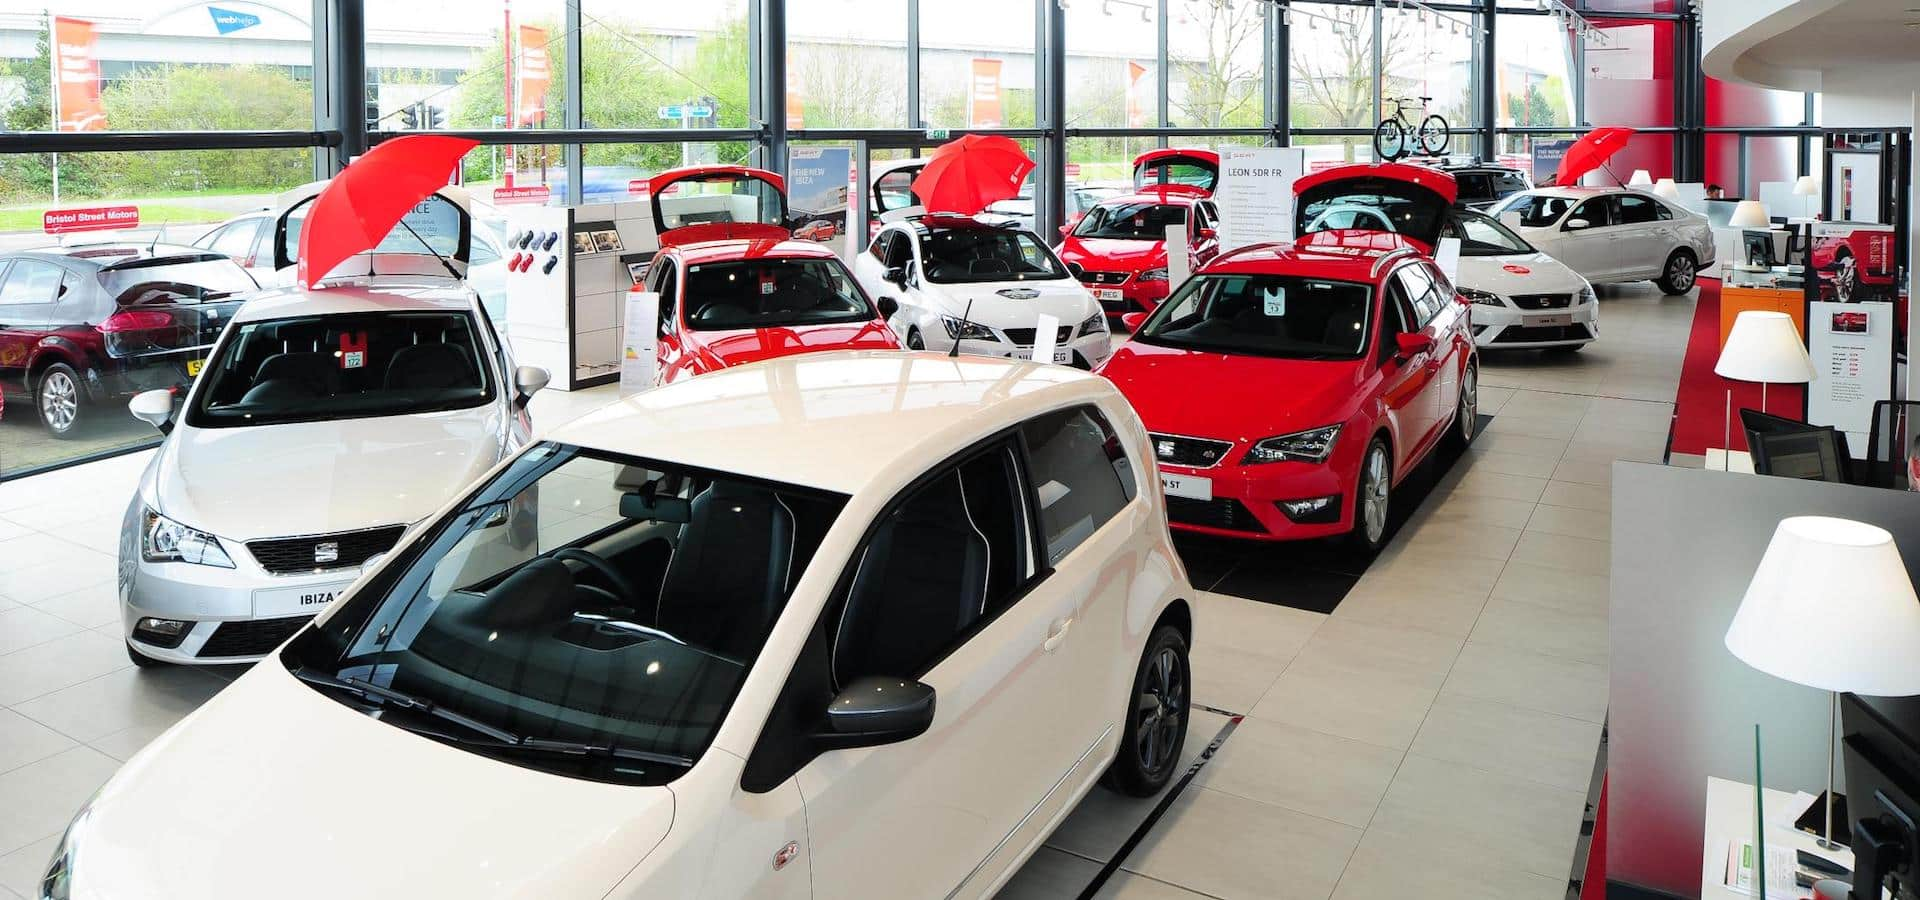 Mercedes-Benz used cars at a dealership